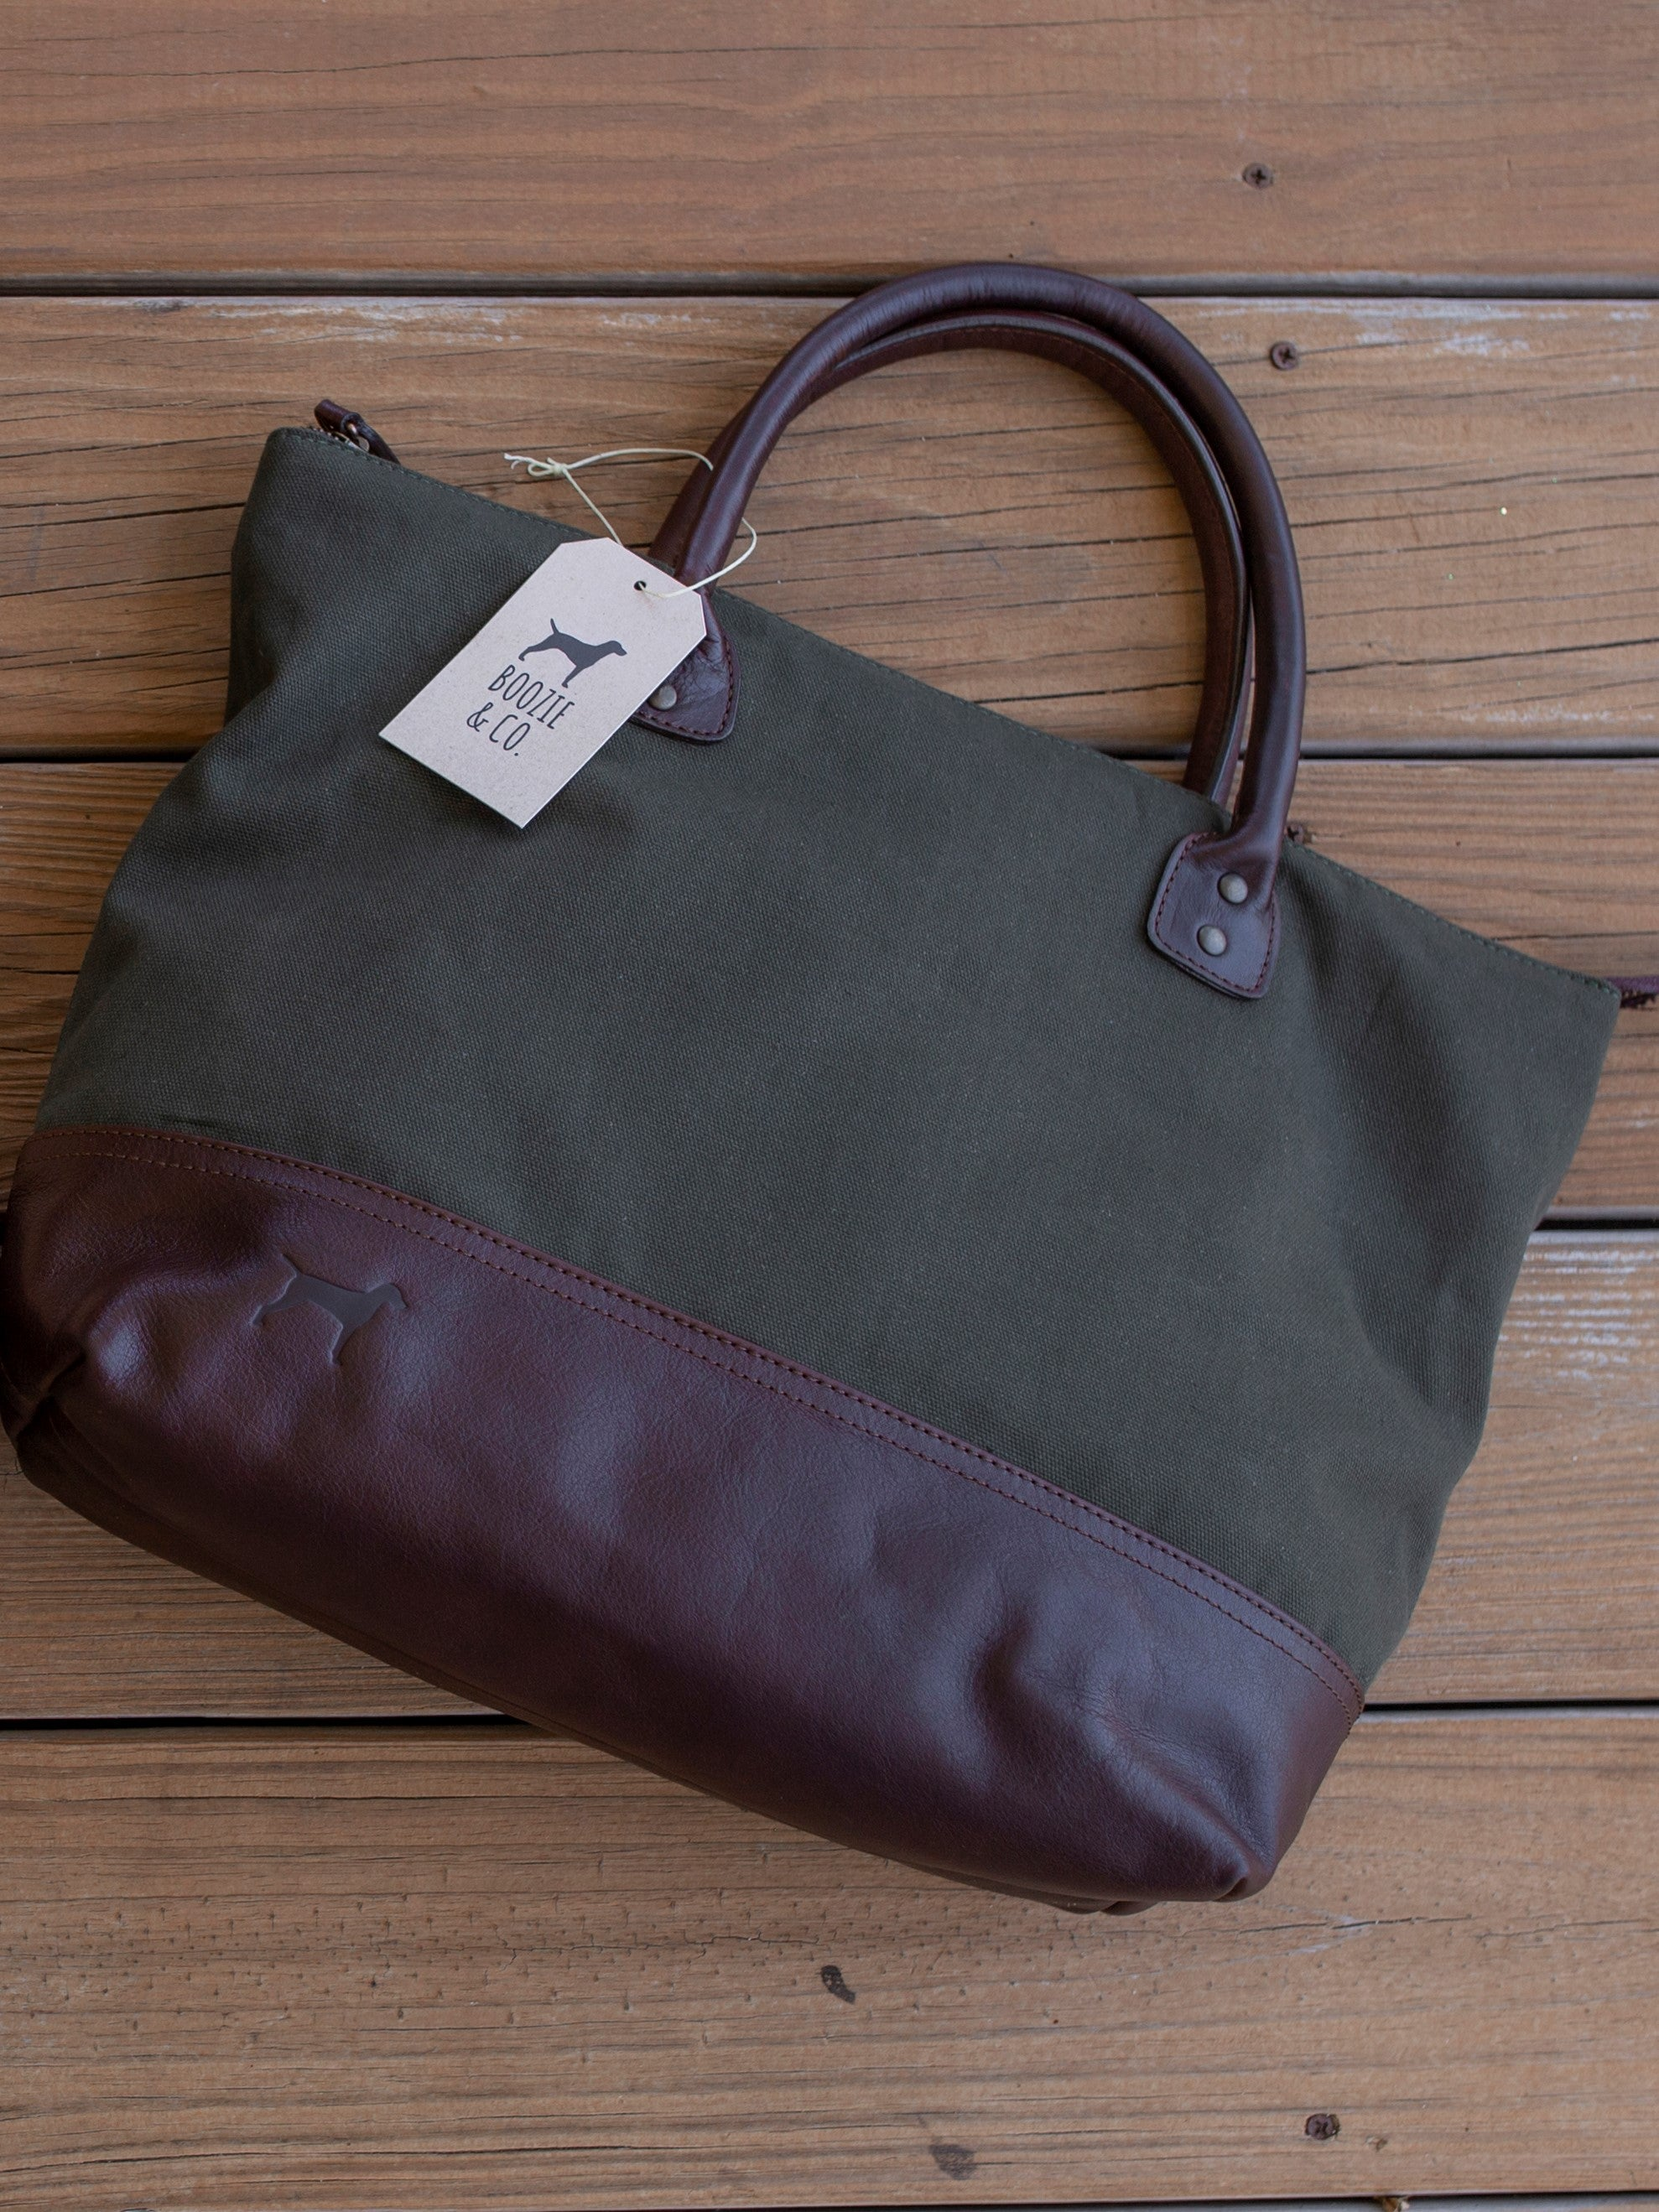 The Lona canvas and leather tote